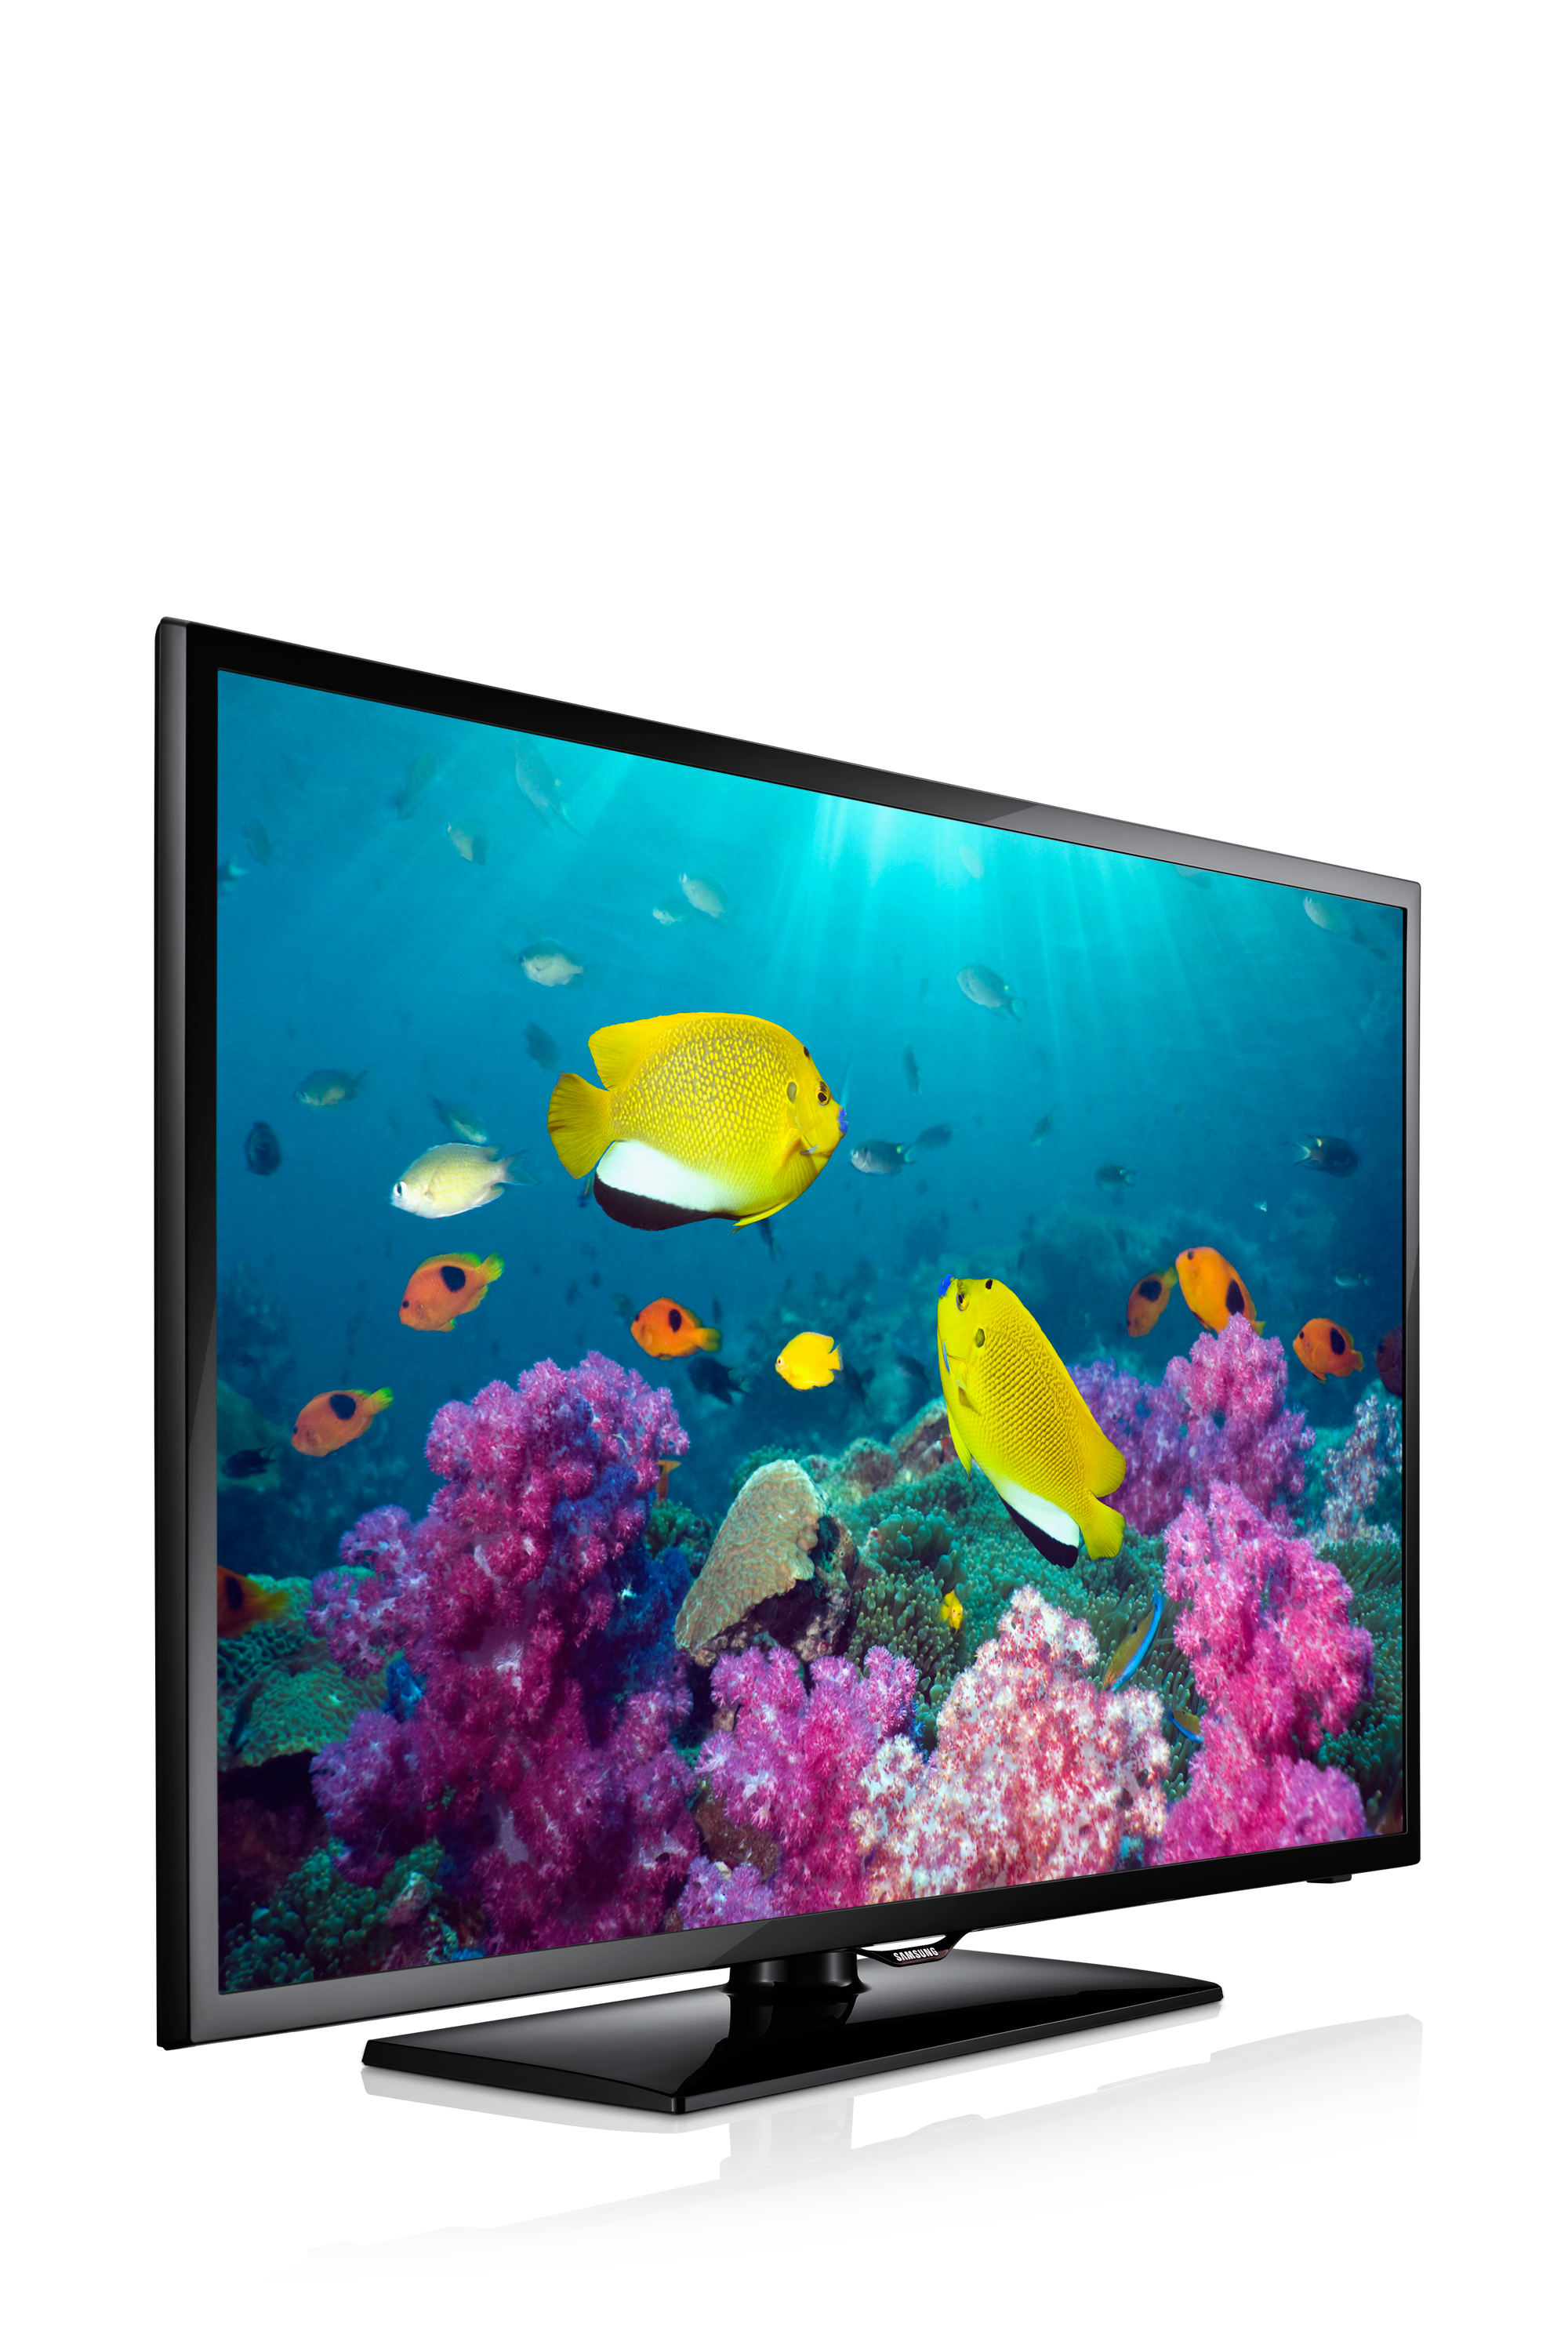 LED телевизор Samsung Real Brand Technics 24540.000